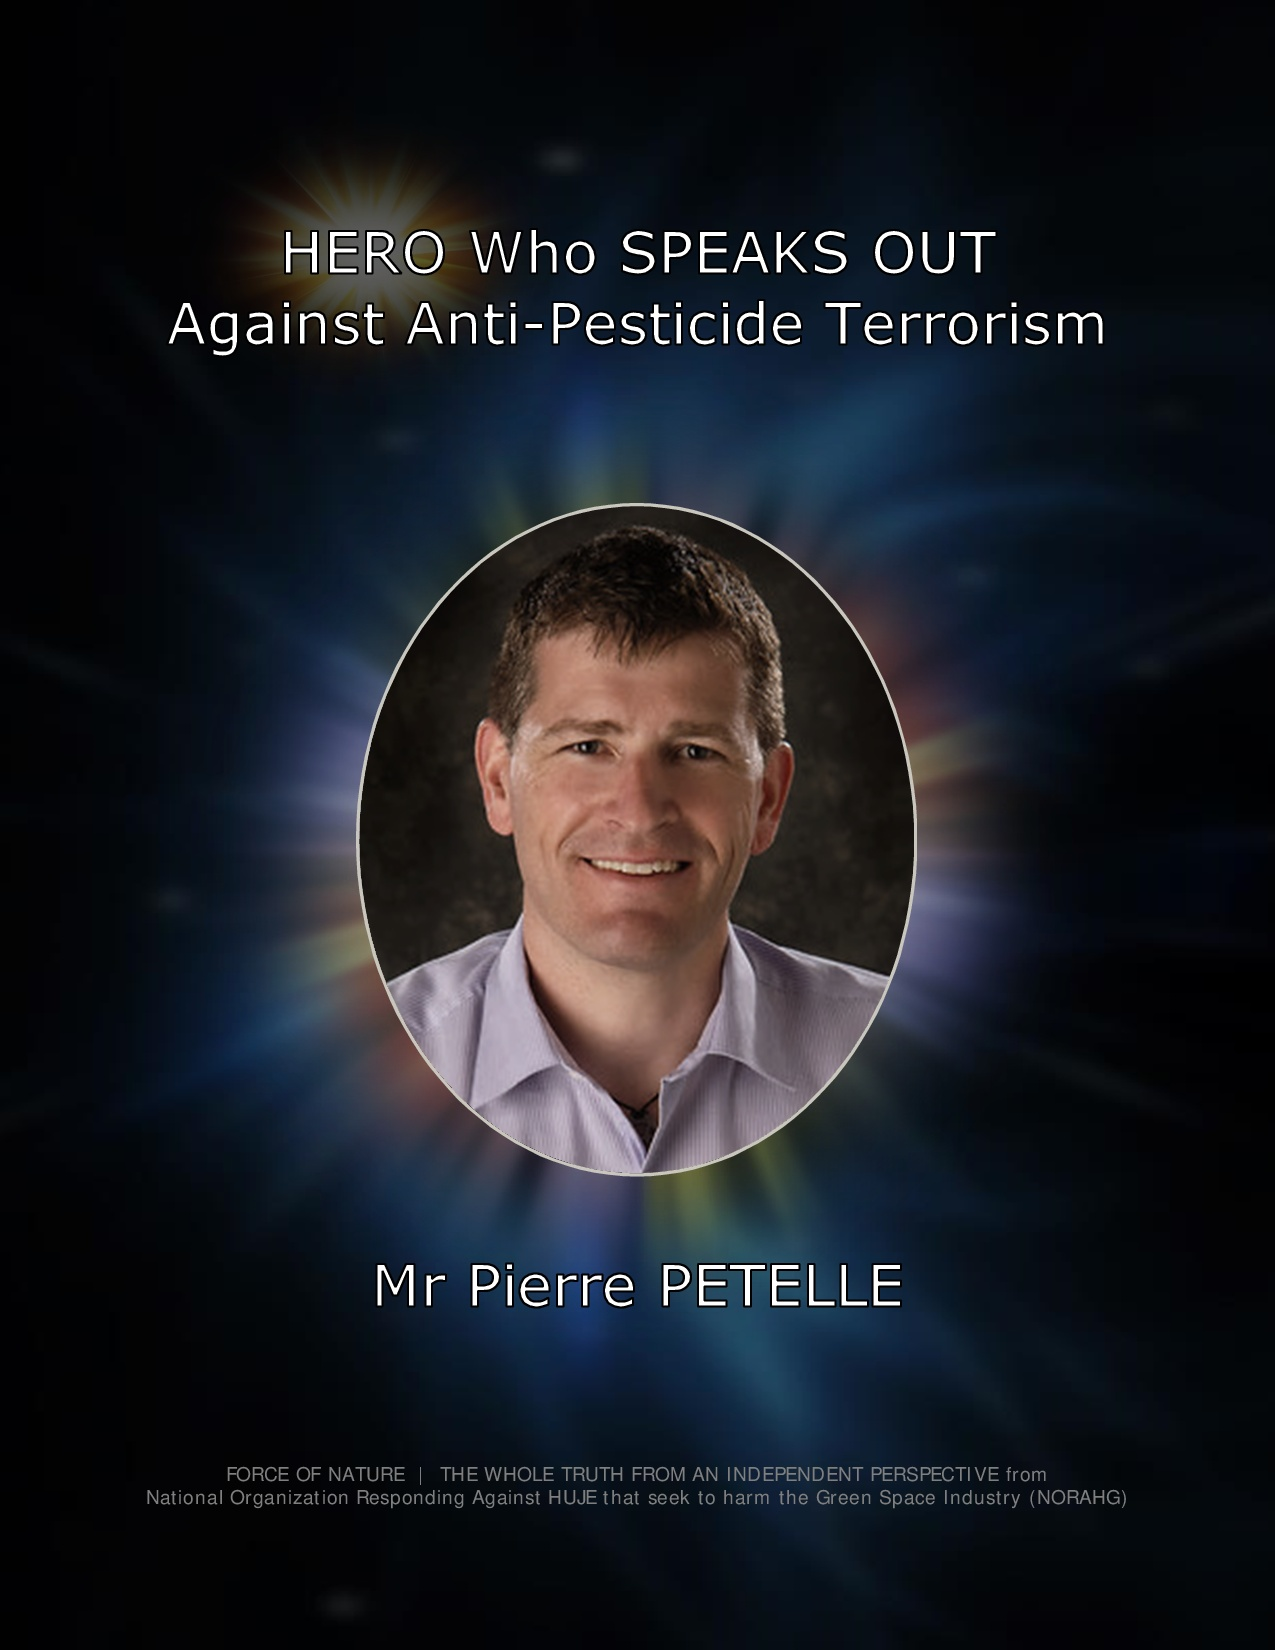 PETELLE, Mr Pierre